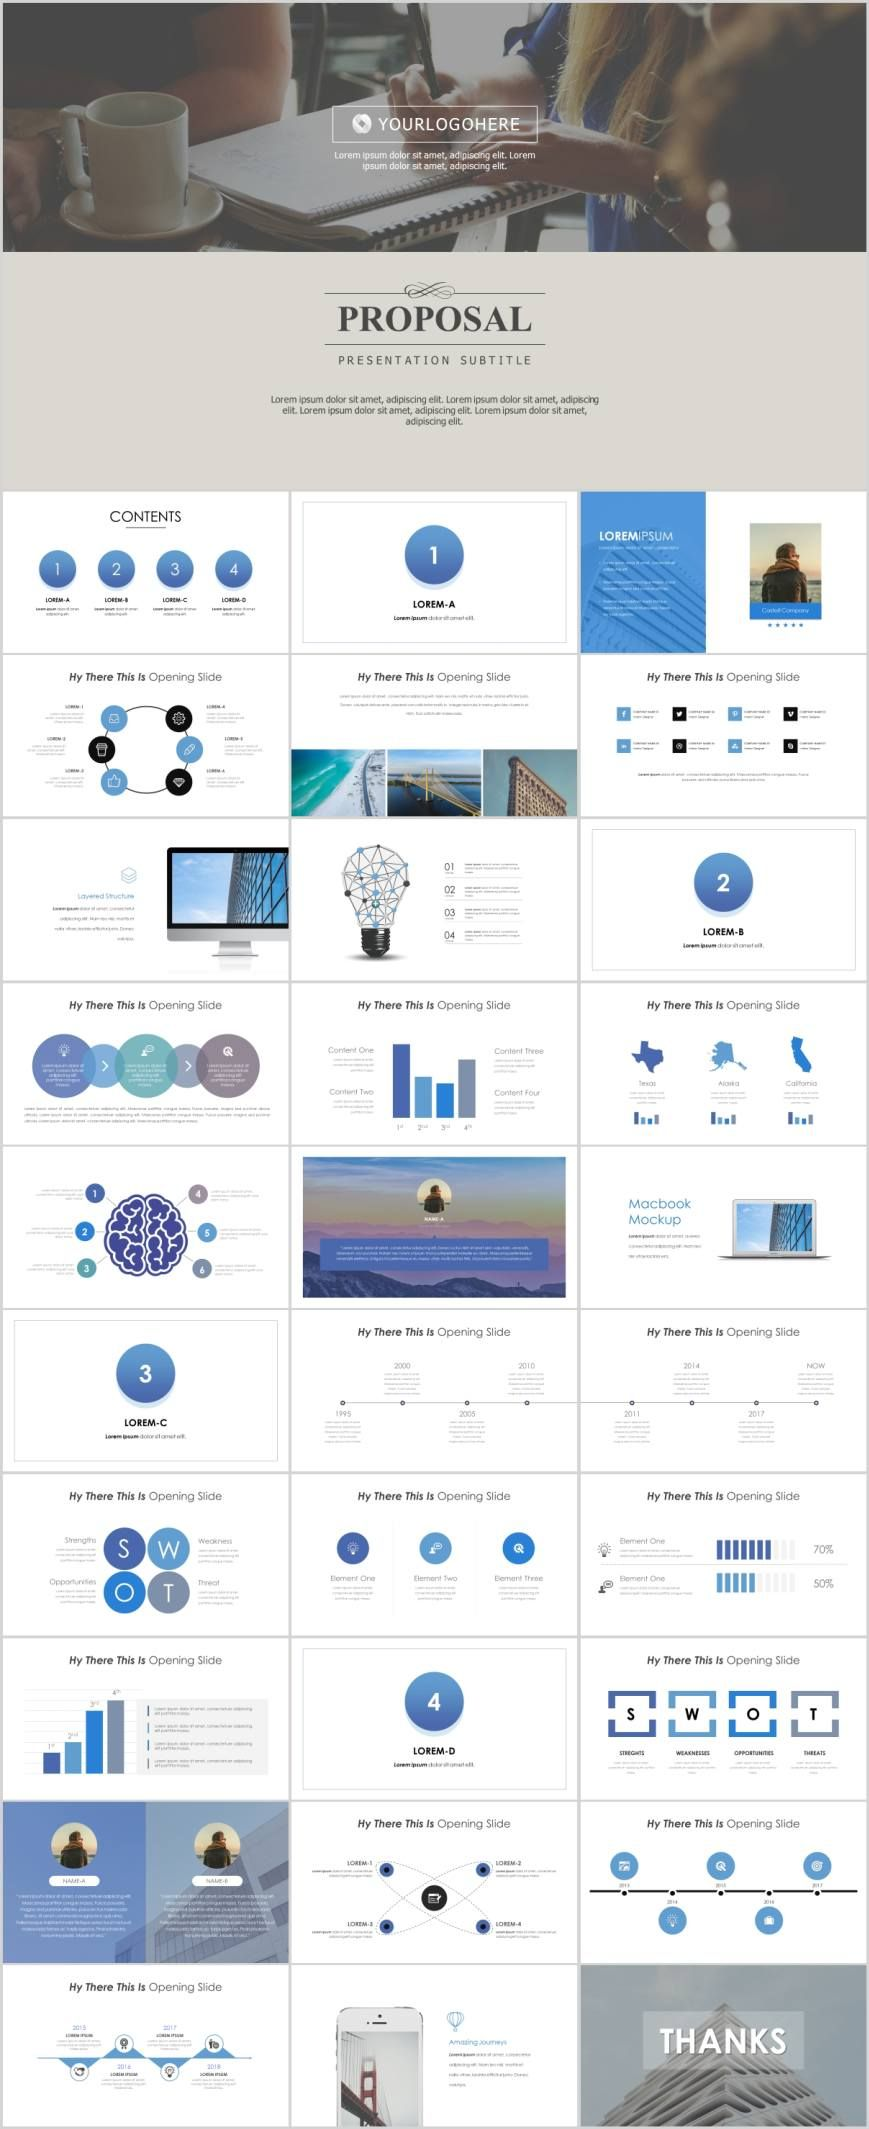 Clean Proposal analysis SWOT PowerPoint template